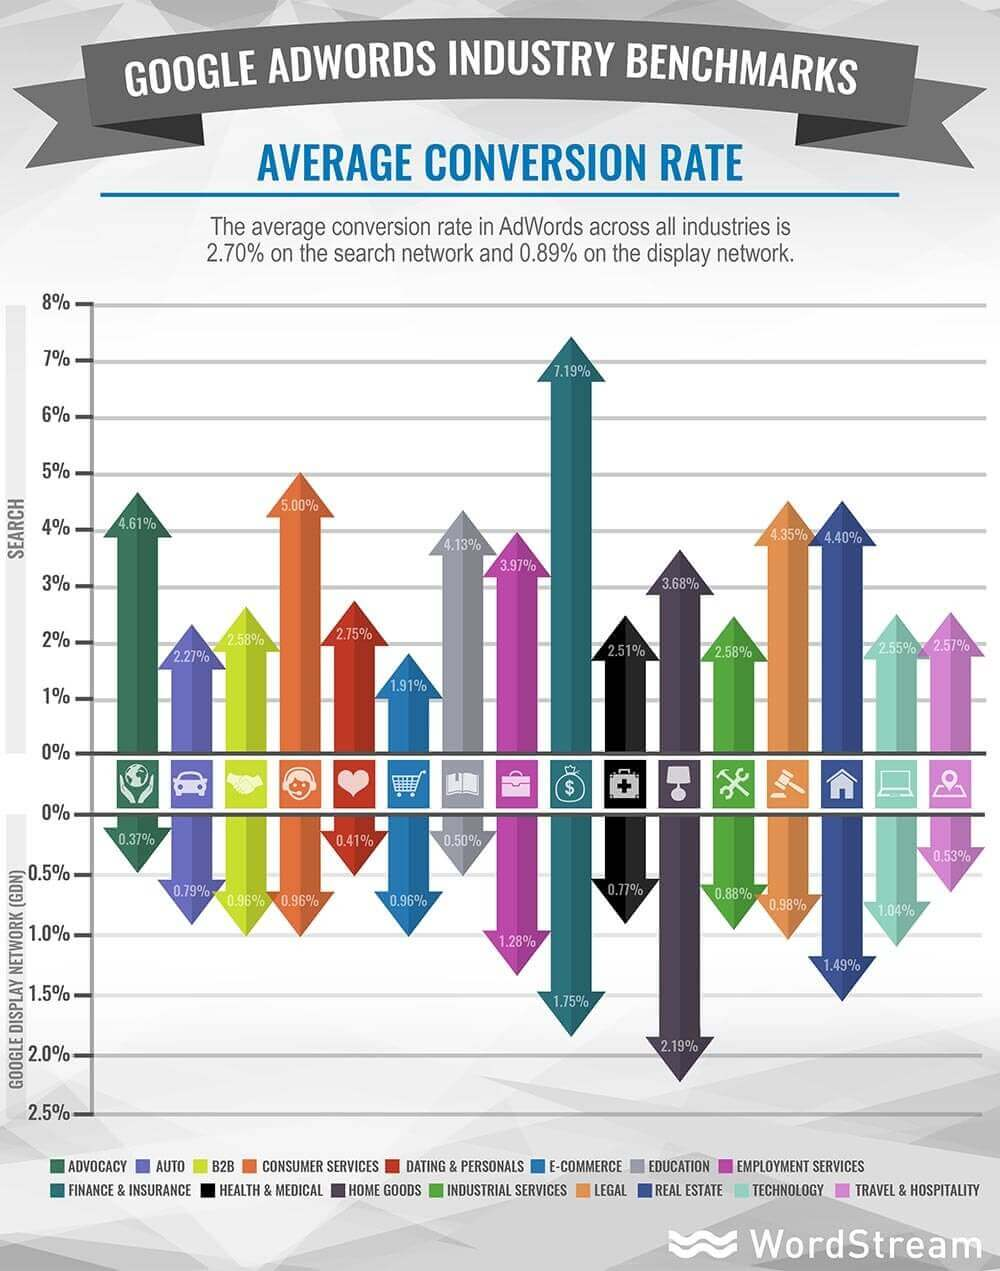 adwords-industry-benchmarks-average-conversion-rate